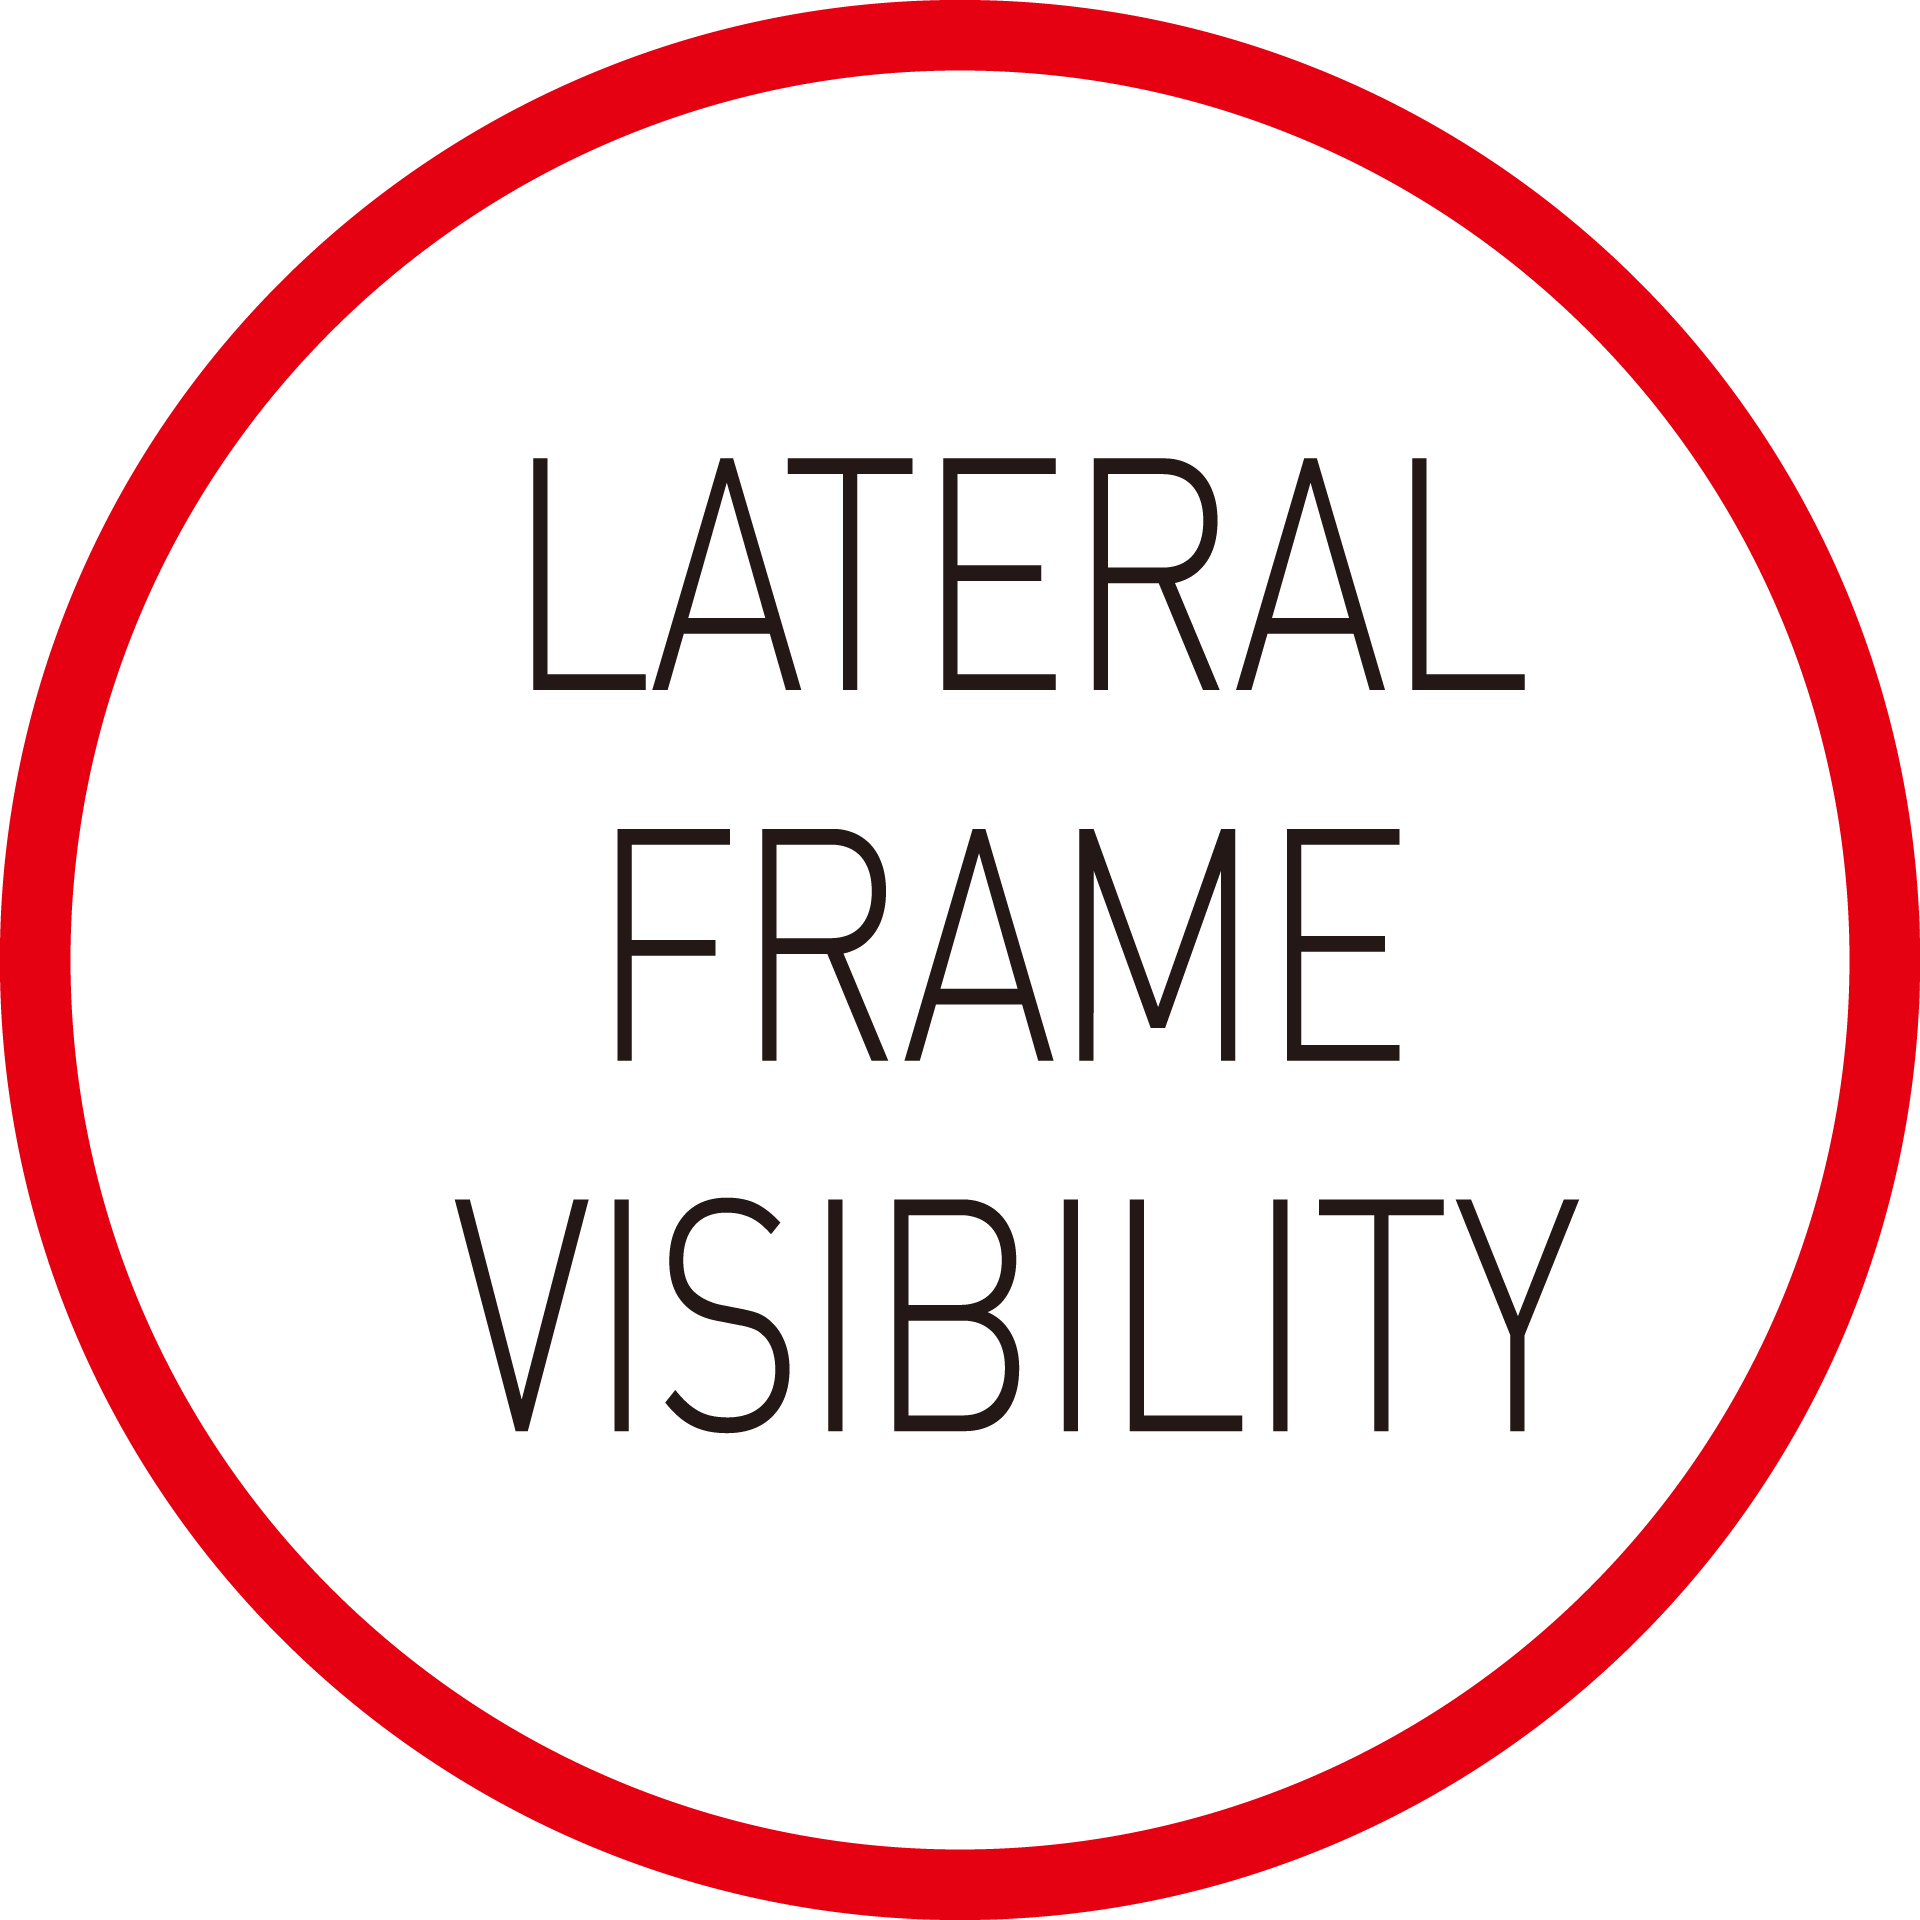 Selle-Italia-material-Lateral-Frame-Visibility